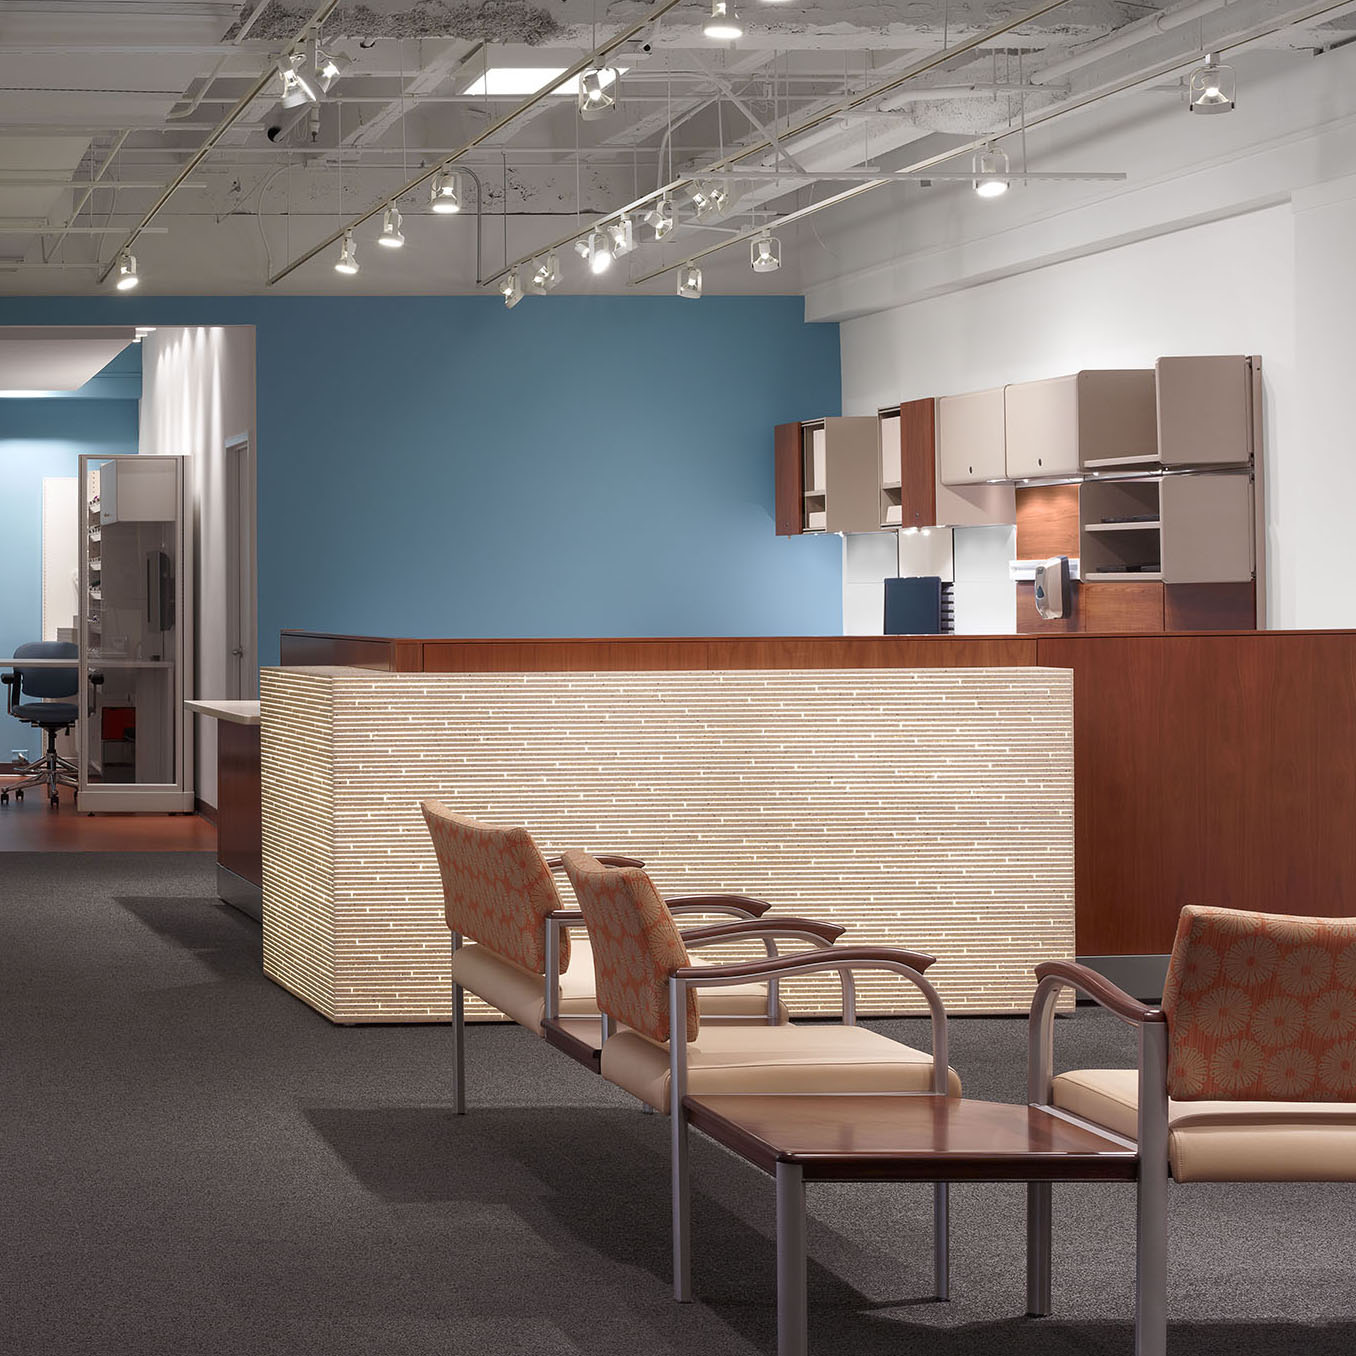 Herman Miller Healthcare Reception - A light-box nurse station for a healthcare reception space